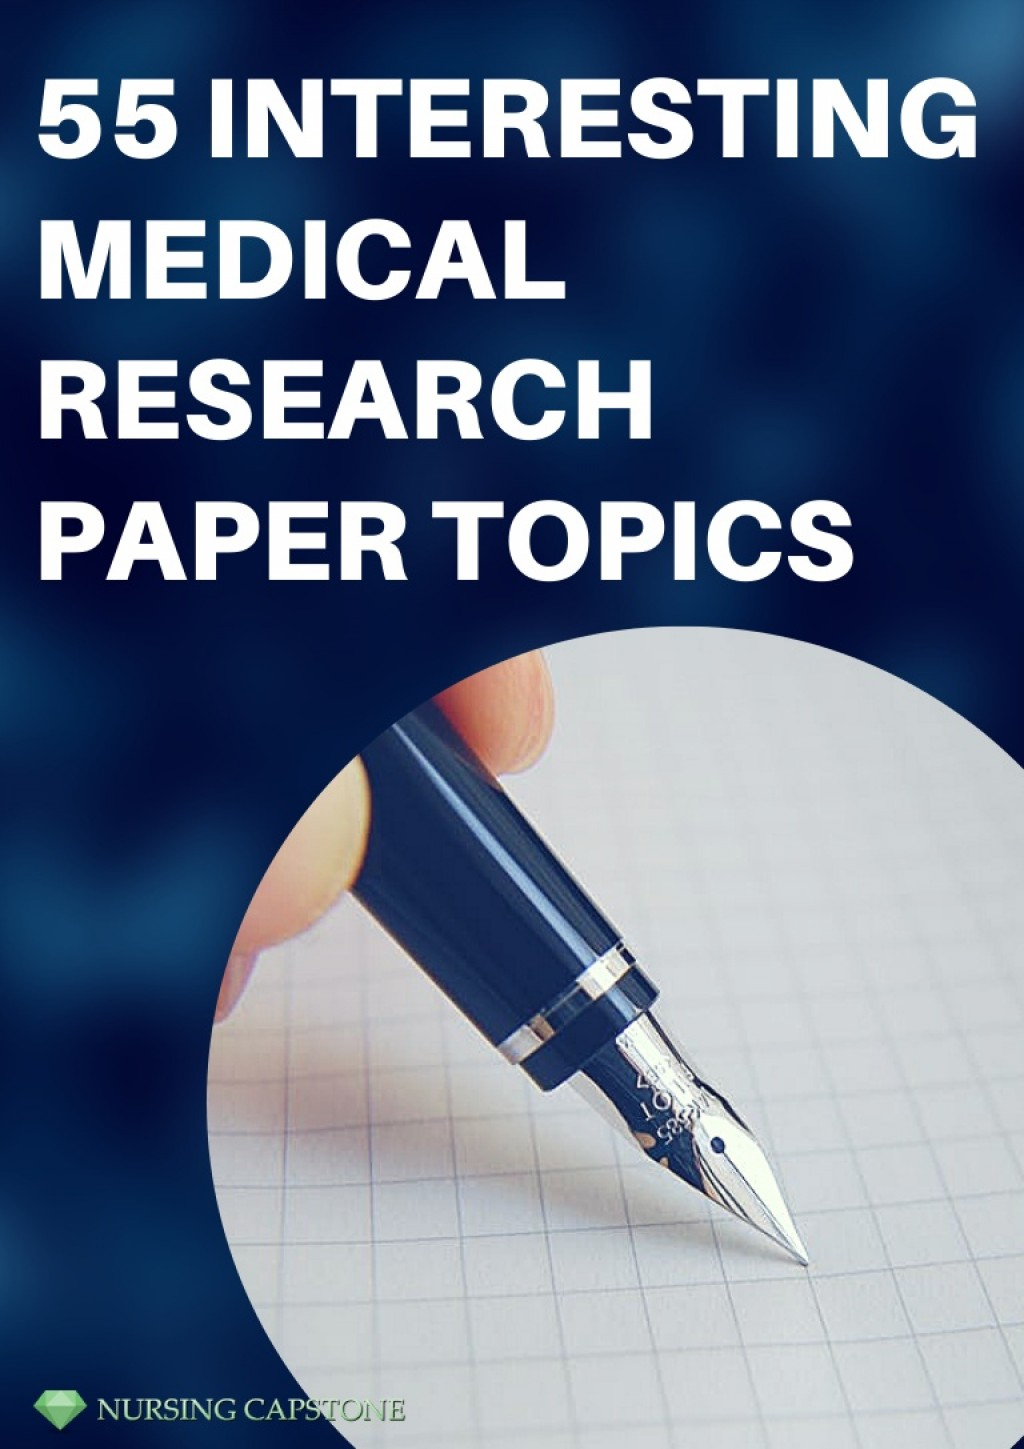 009 Medical Topics For Research Papers Good Paper Thumbnail Breathtaking Ethics Biotechnology Technology Large